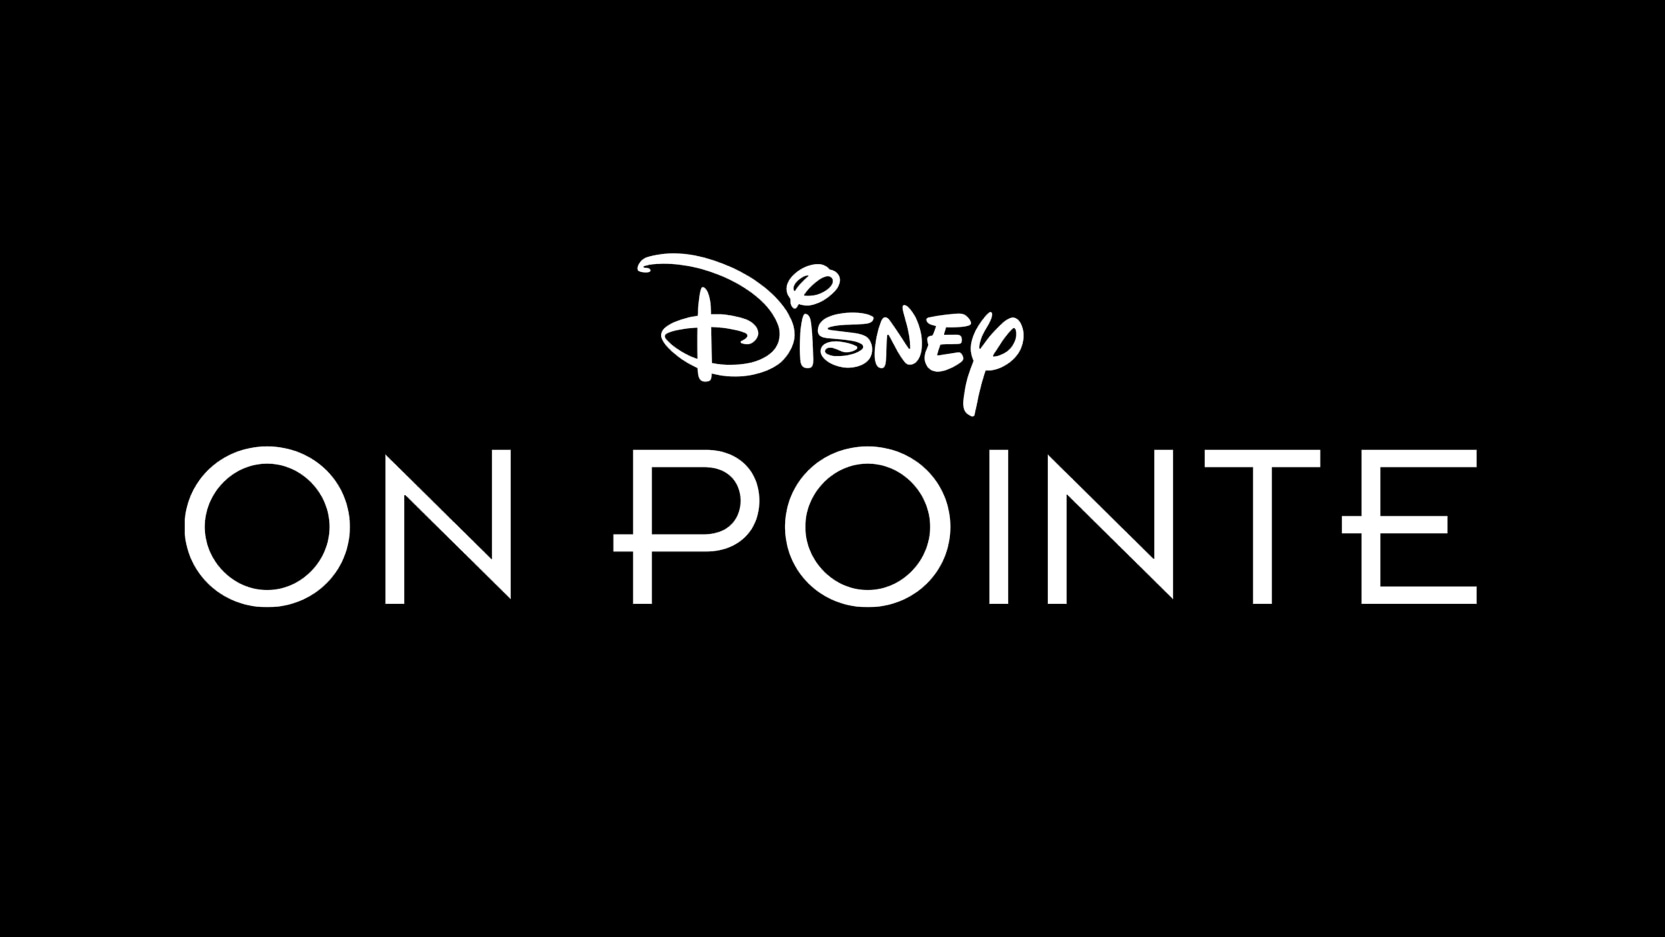 """Disney+ releases first-look trailer for """"On Pointe"""" a new docuseries premiering December 18 on Disney+"""